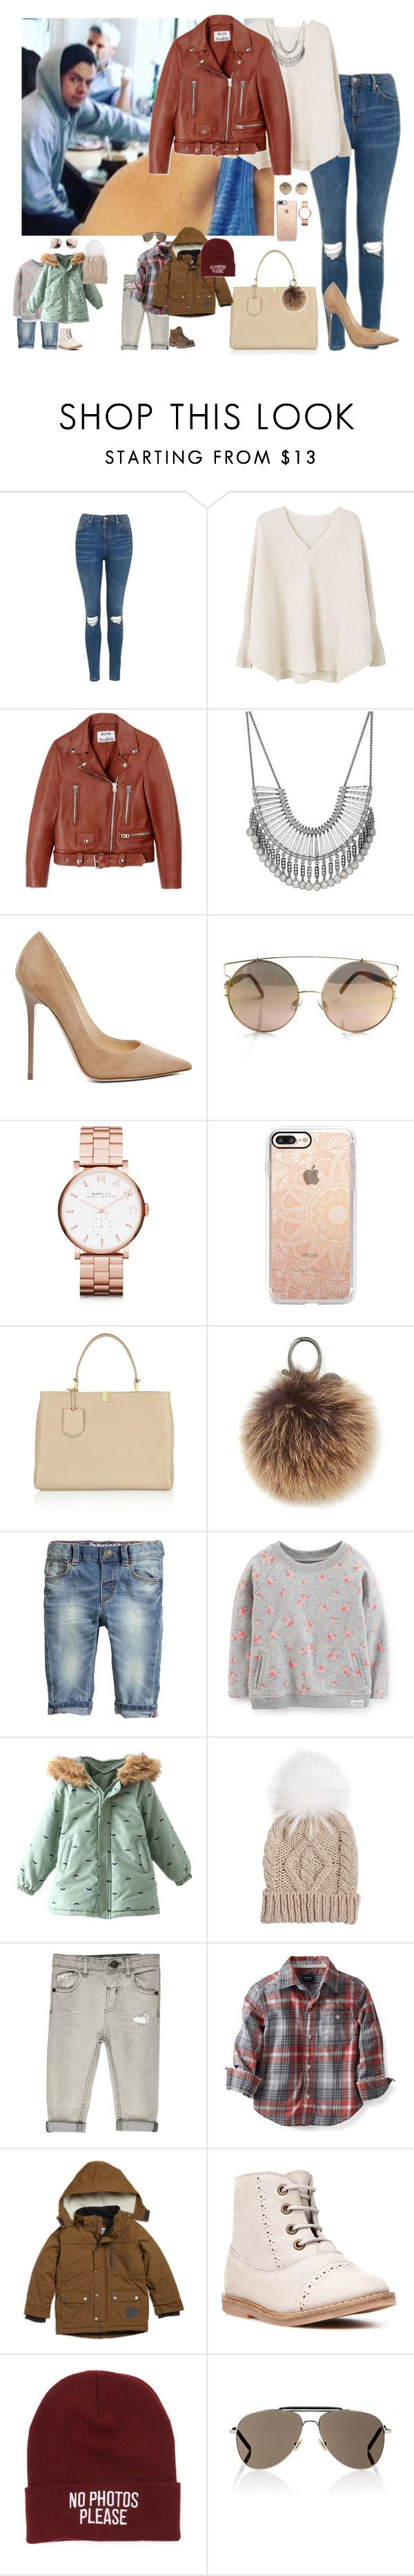 """""""Sin título #1221"""" by wiki0622 ❤ liked on Polyvore featuring Topshop, MANGO, Acne Studios, Lucky Brand, Jimmy Choo, Marc by Marc Jacobs, Casetify, Balenciaga, Rebecca Minkoff and Yves Salomon"""